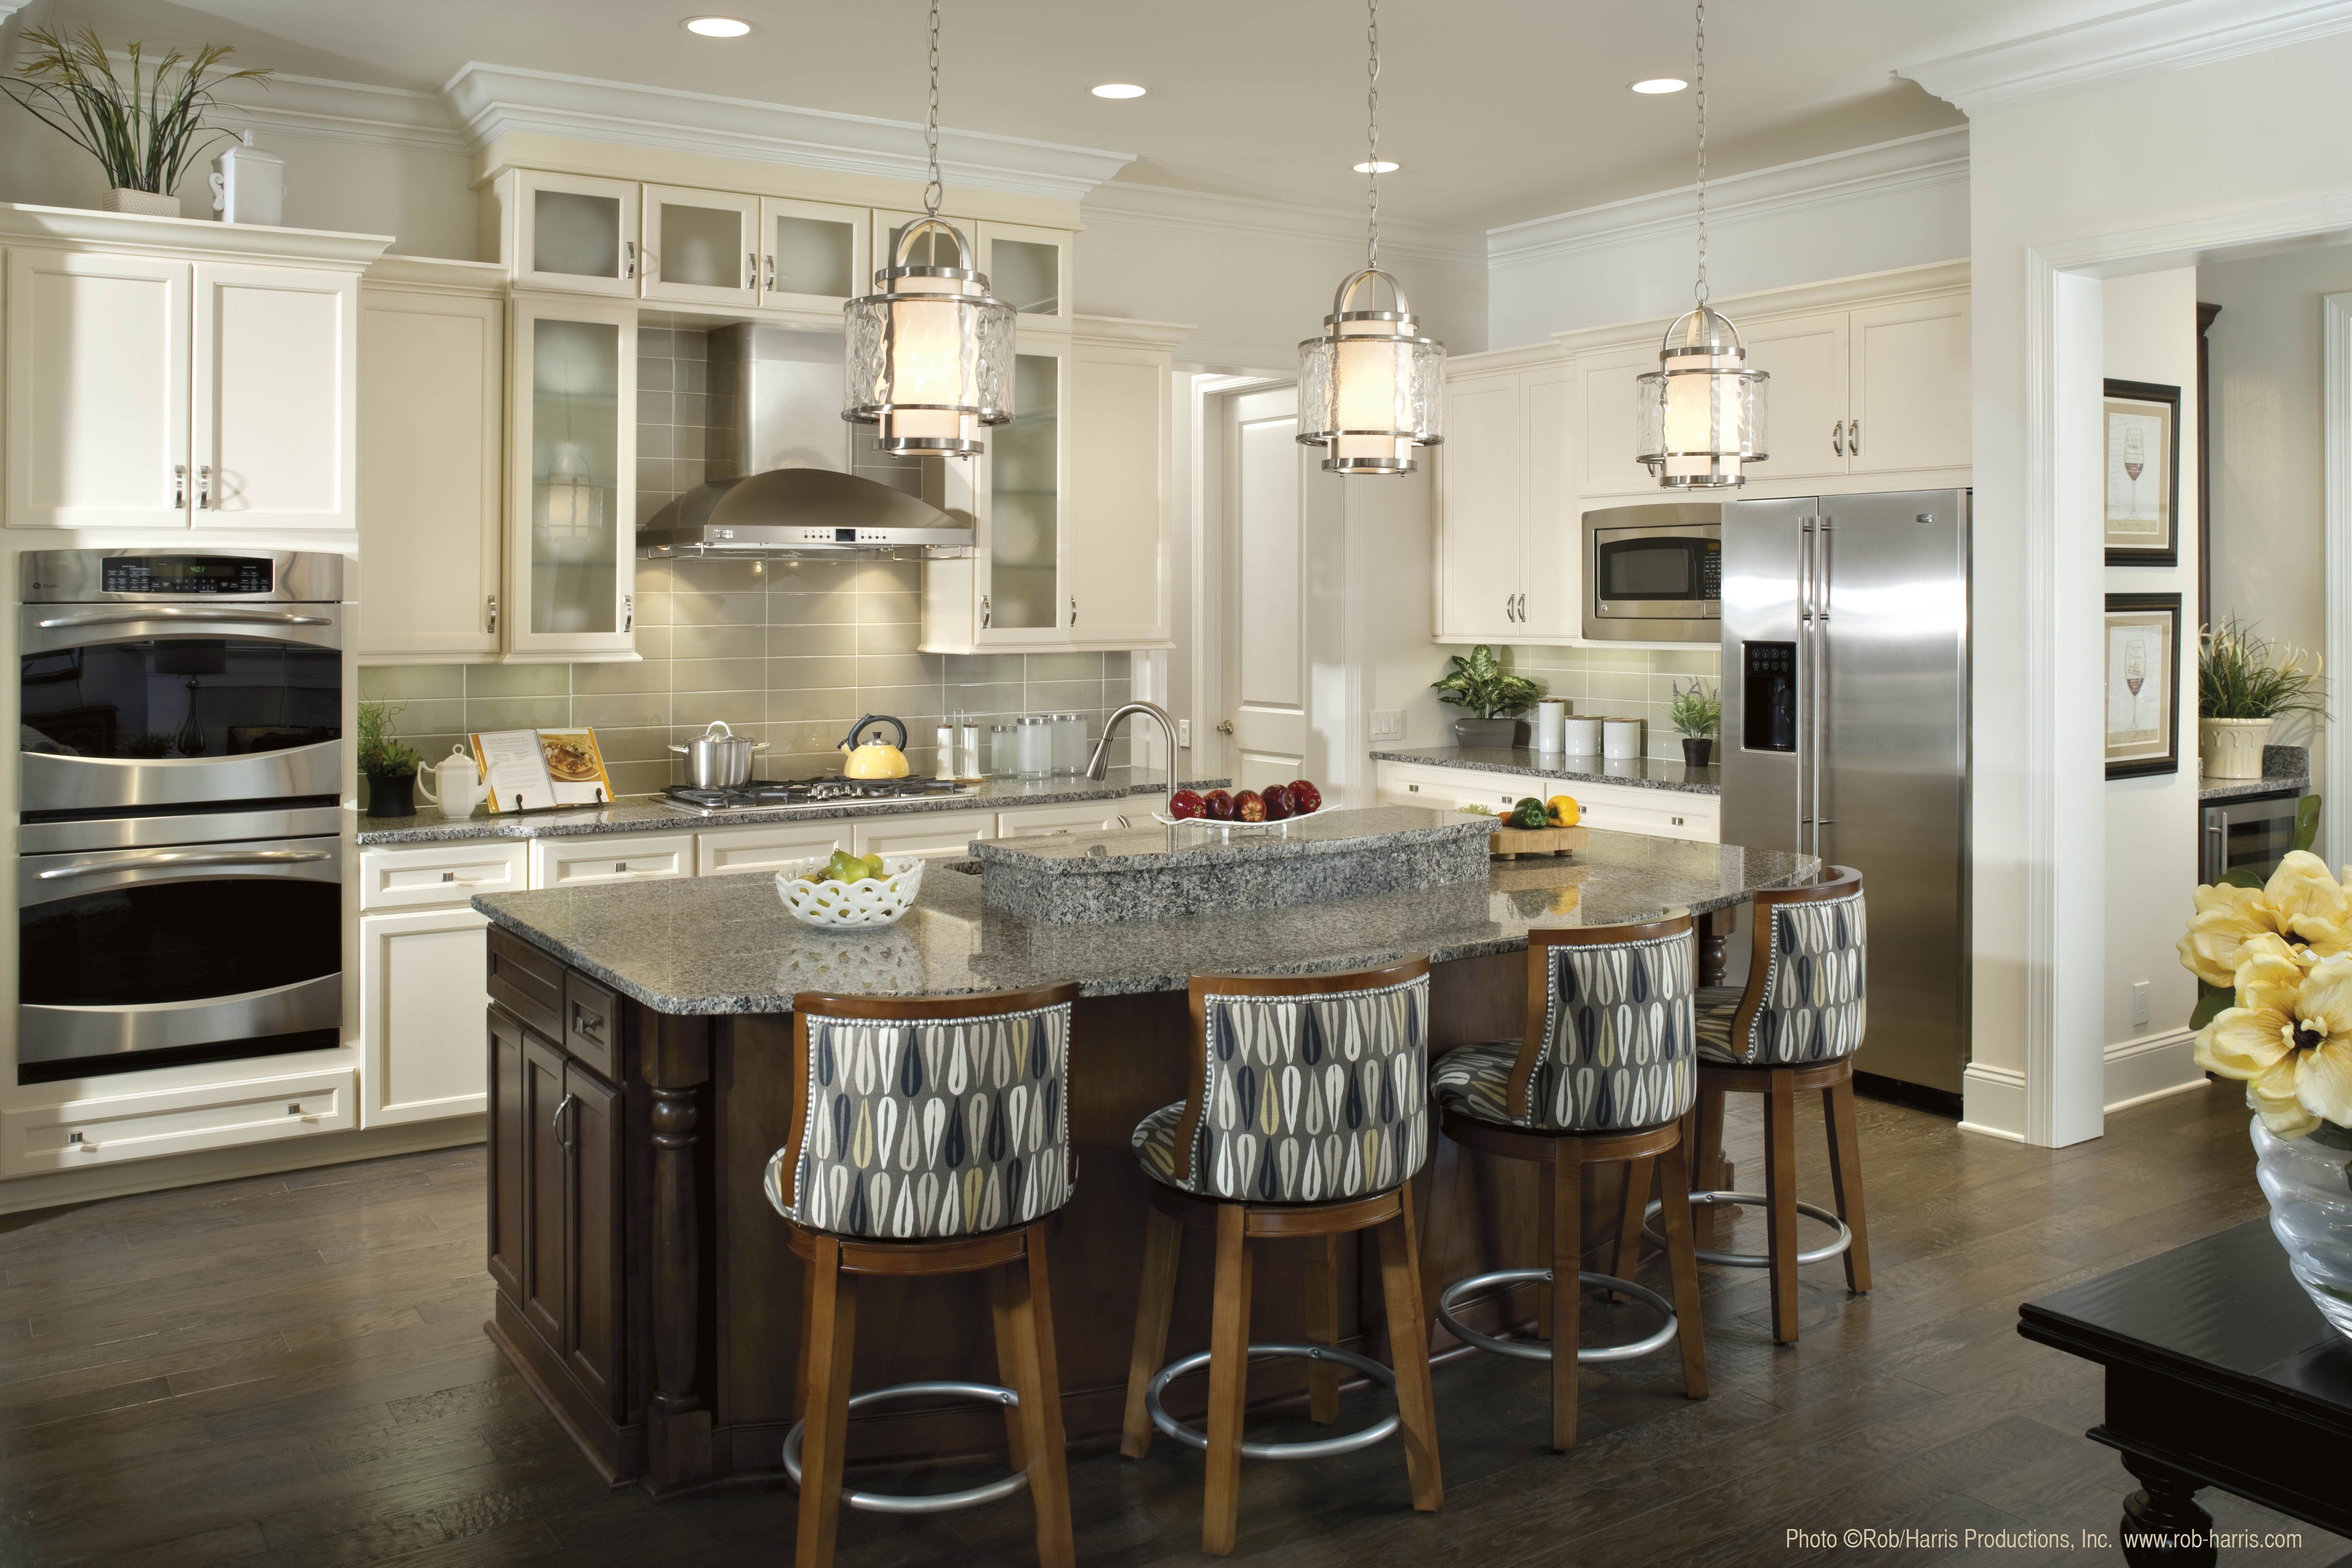 Pendant Lights For Kitchen Islands Pendant Lighting Over Kitchen Island The Perfect Amount Of